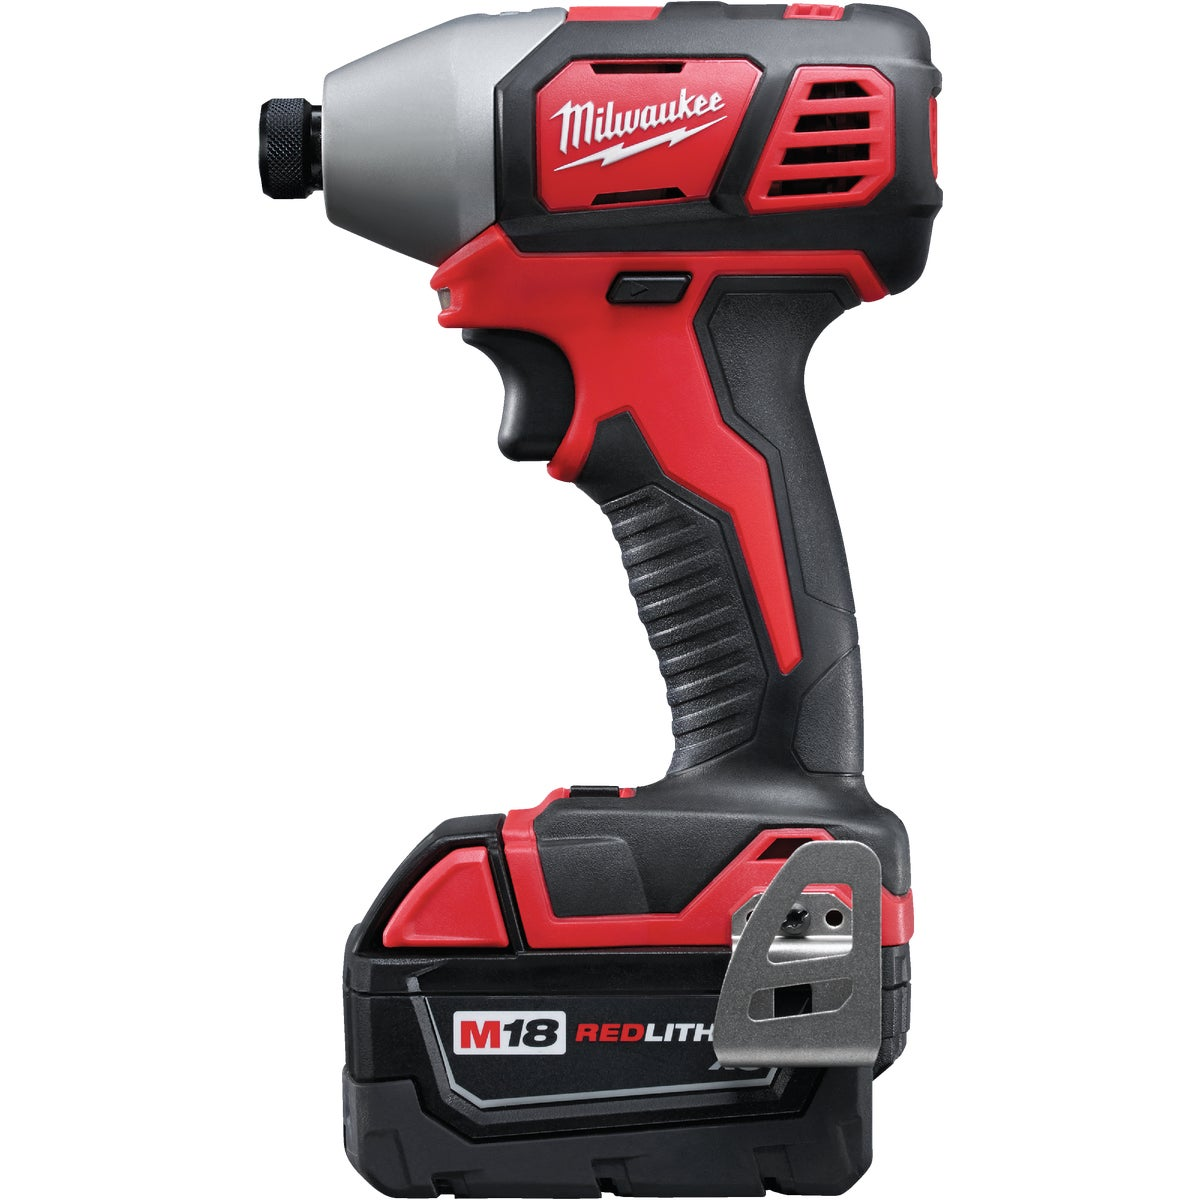 M18 LI-ION IMPACT DRIVER - 2657-22 by Milwaukee Elec Tool